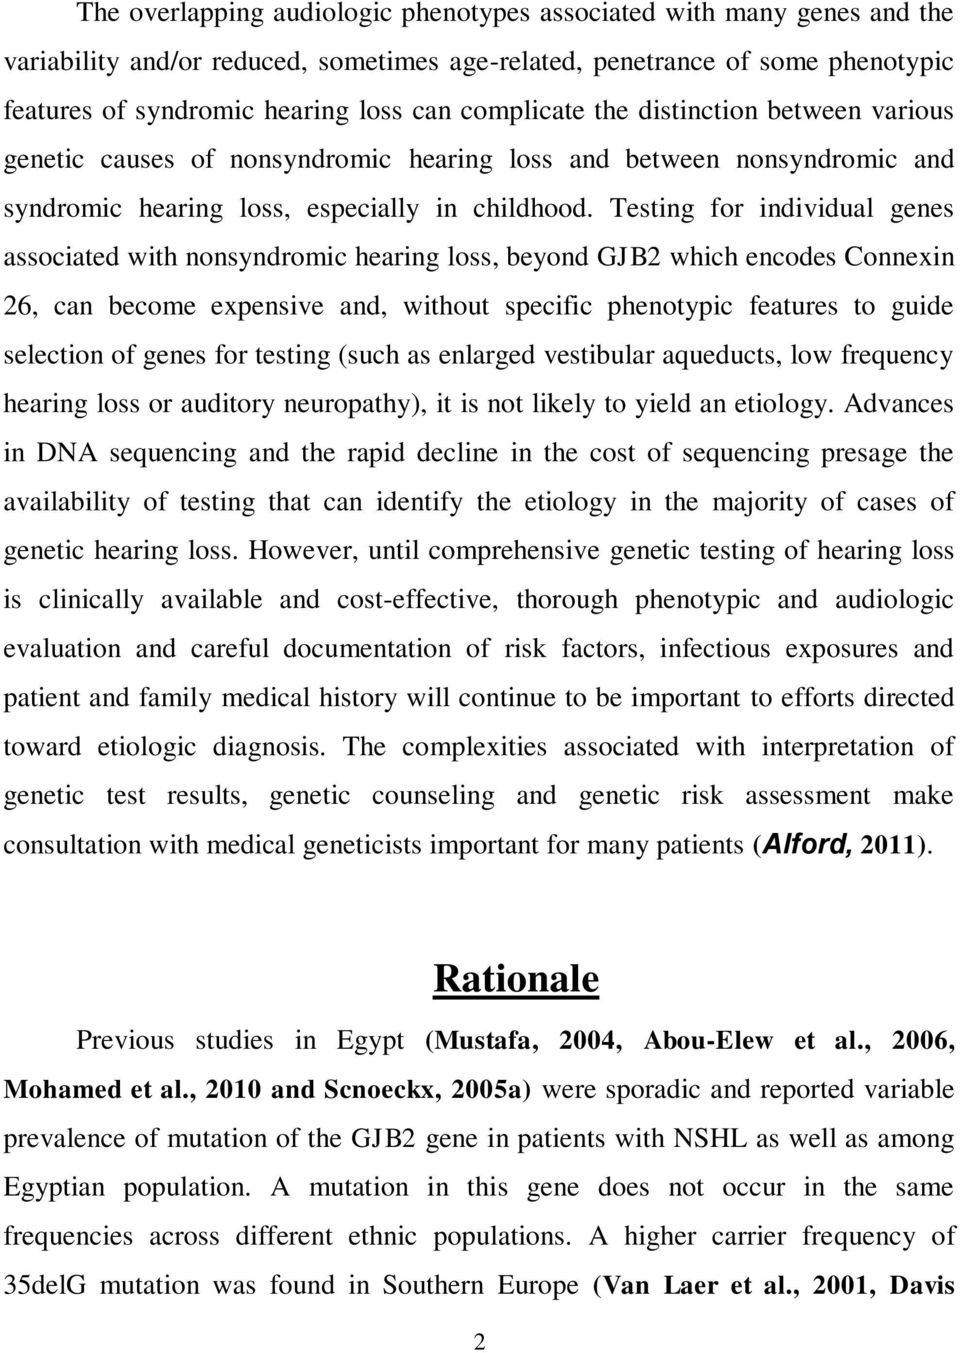 Testing for individual genes associated with nonsyndromic hearing loss, beyond GJB2 which encodes Connexin 26, can become expensive and, without specific phenotypic features to guide selection of